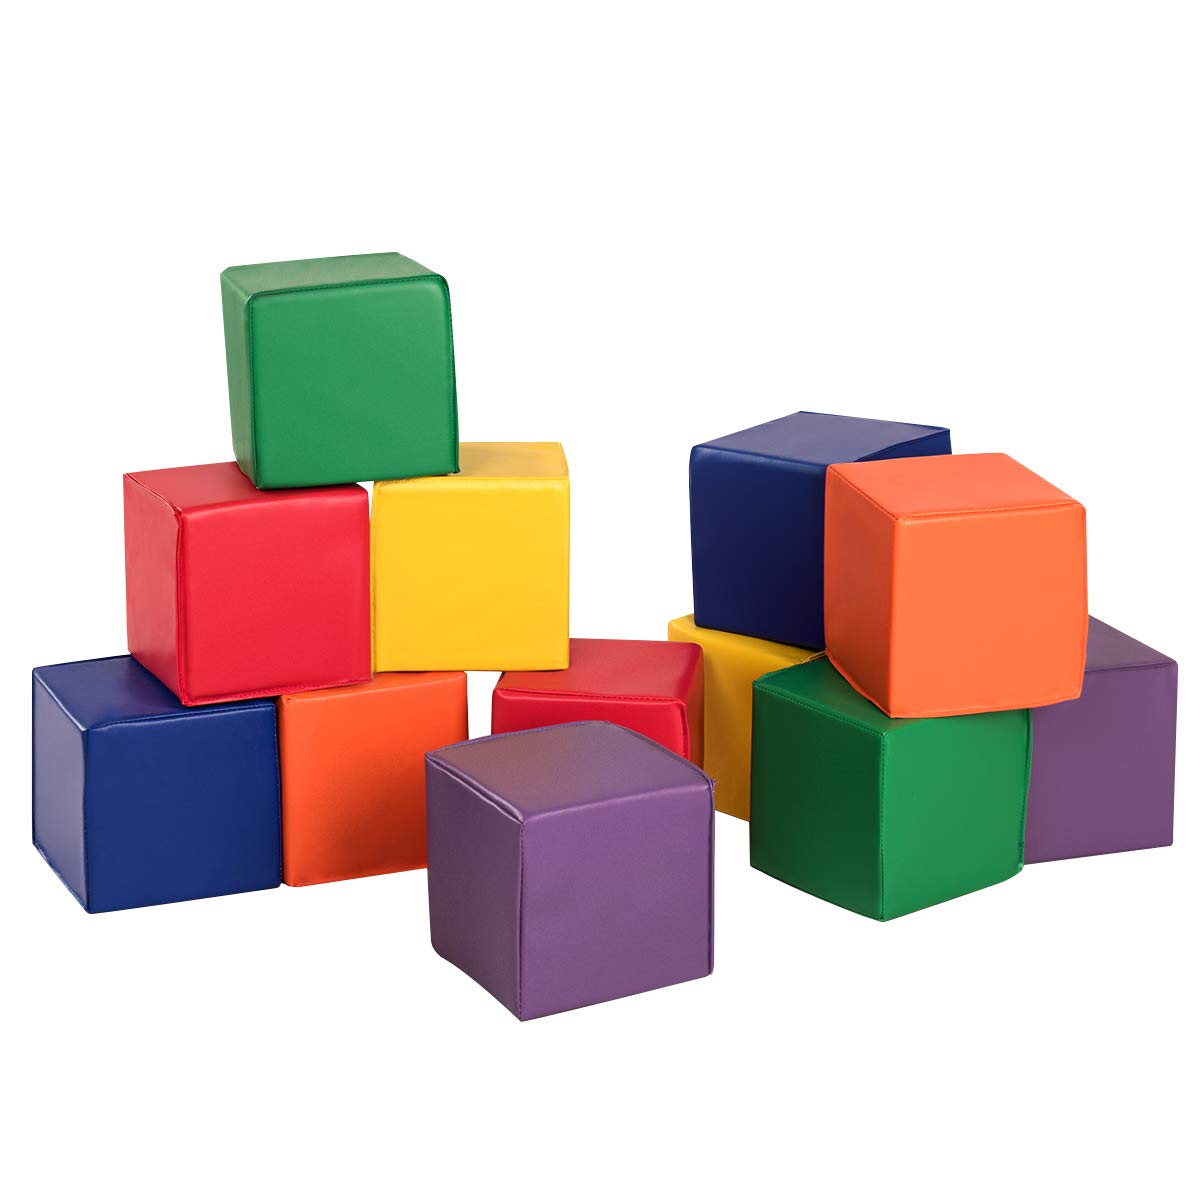 Costzon Soft Blocks, Toddler Foam Block Playset for Safe Active Play and Building, Indoor Climbers Stacking Play Set Learning Toys for Toddlers, Baby, Kids and Preschooler (8-Inch, 12-Piece)